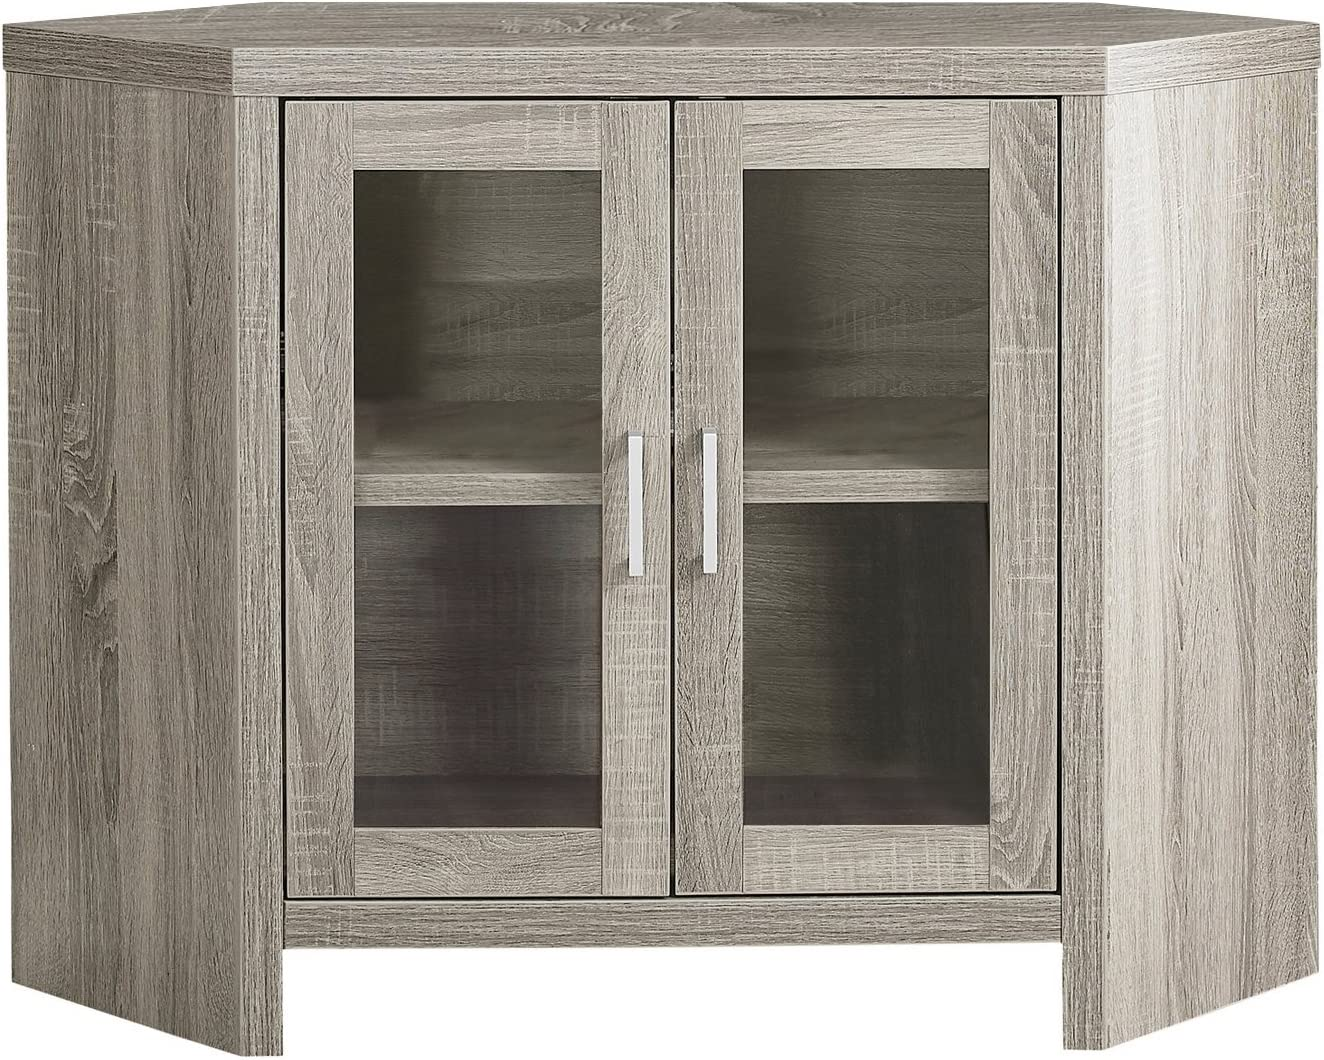 42 Dark Taupe Monarch Specialties I Corner with Glass Doors TV Stand